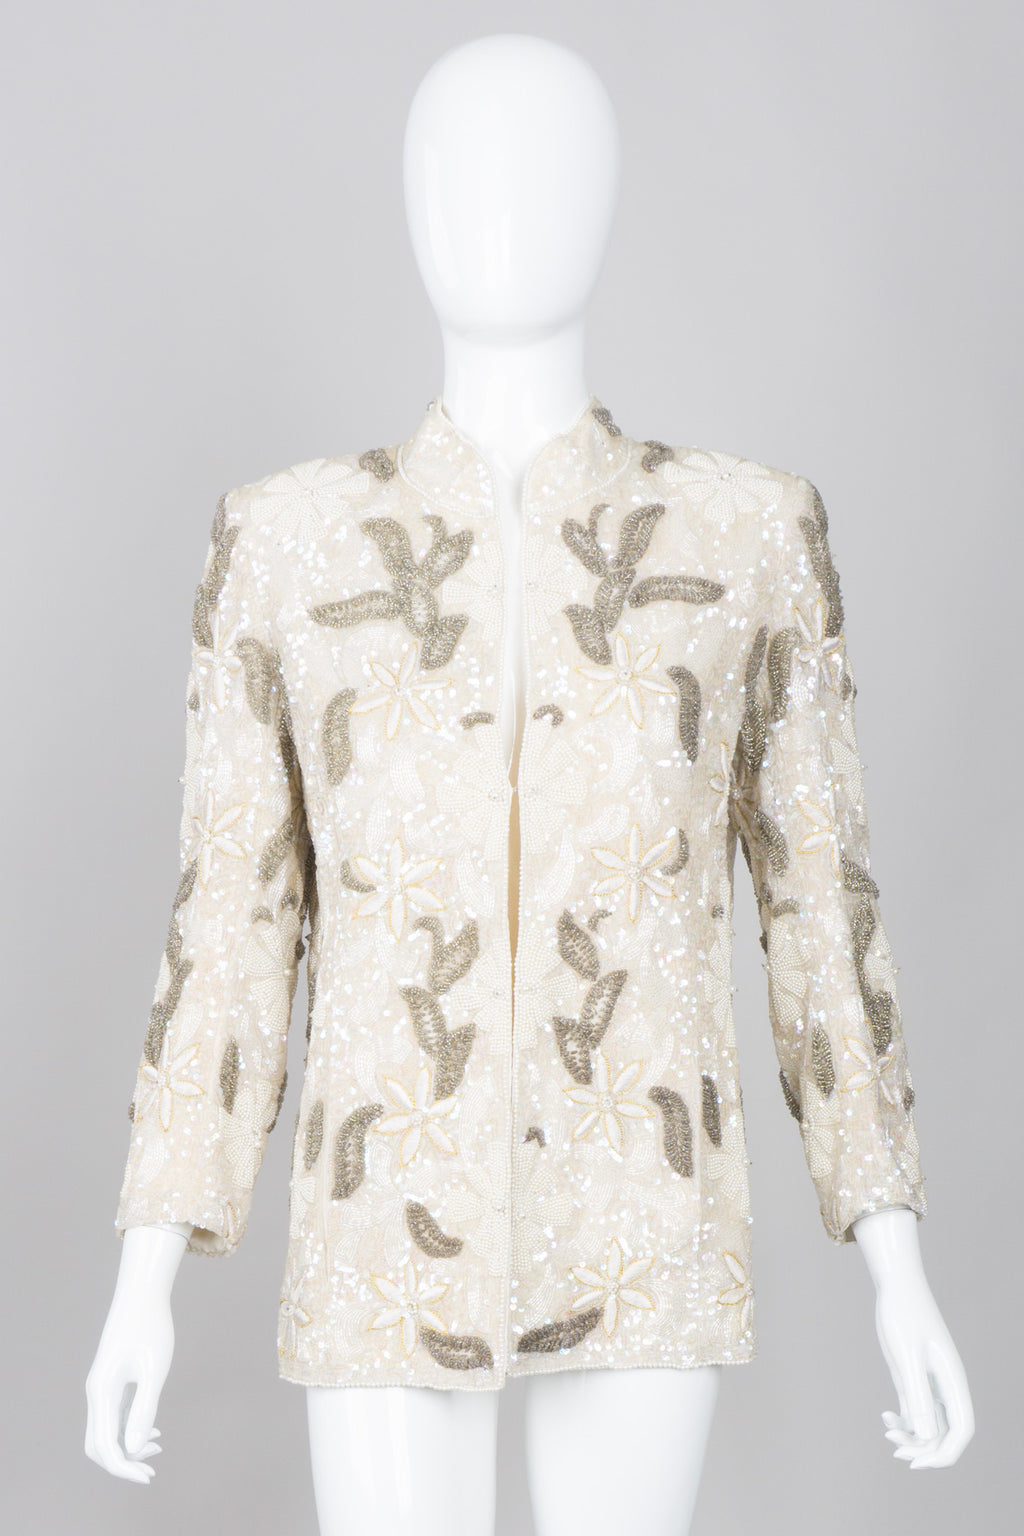 Loris Azzaro Beaded Leaf Jacket